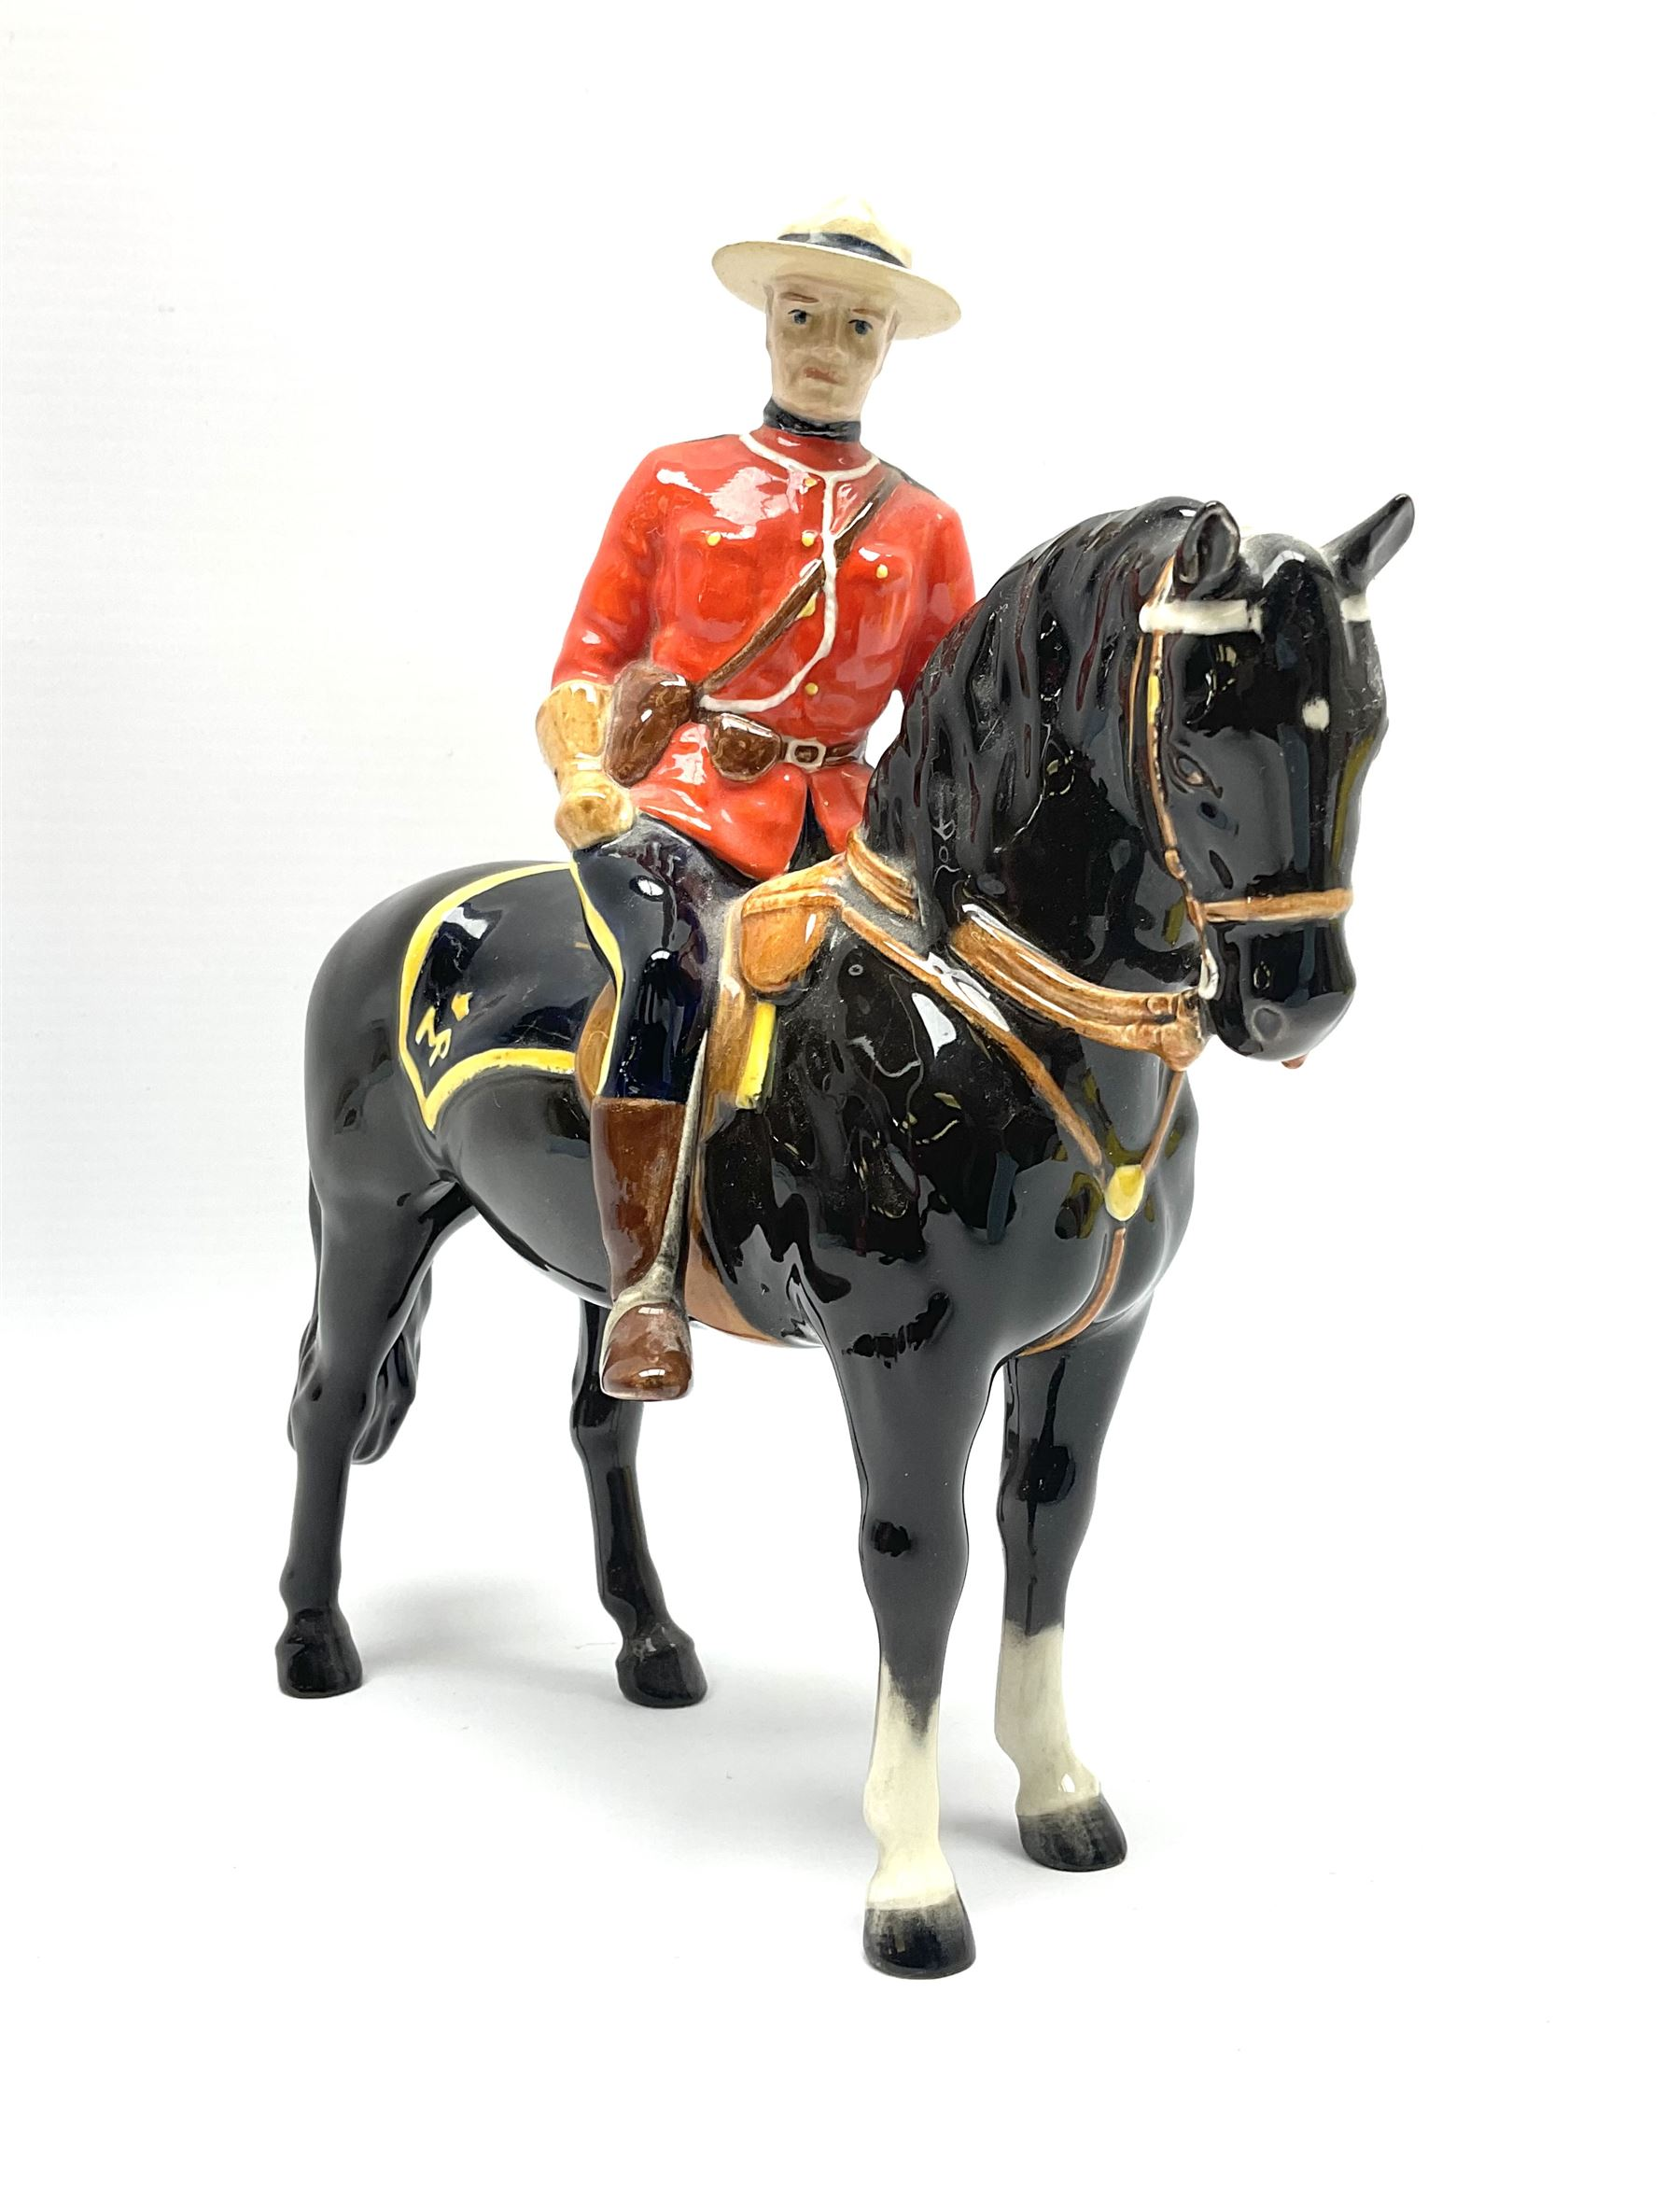 A model of a Canadian Mountie on horseback